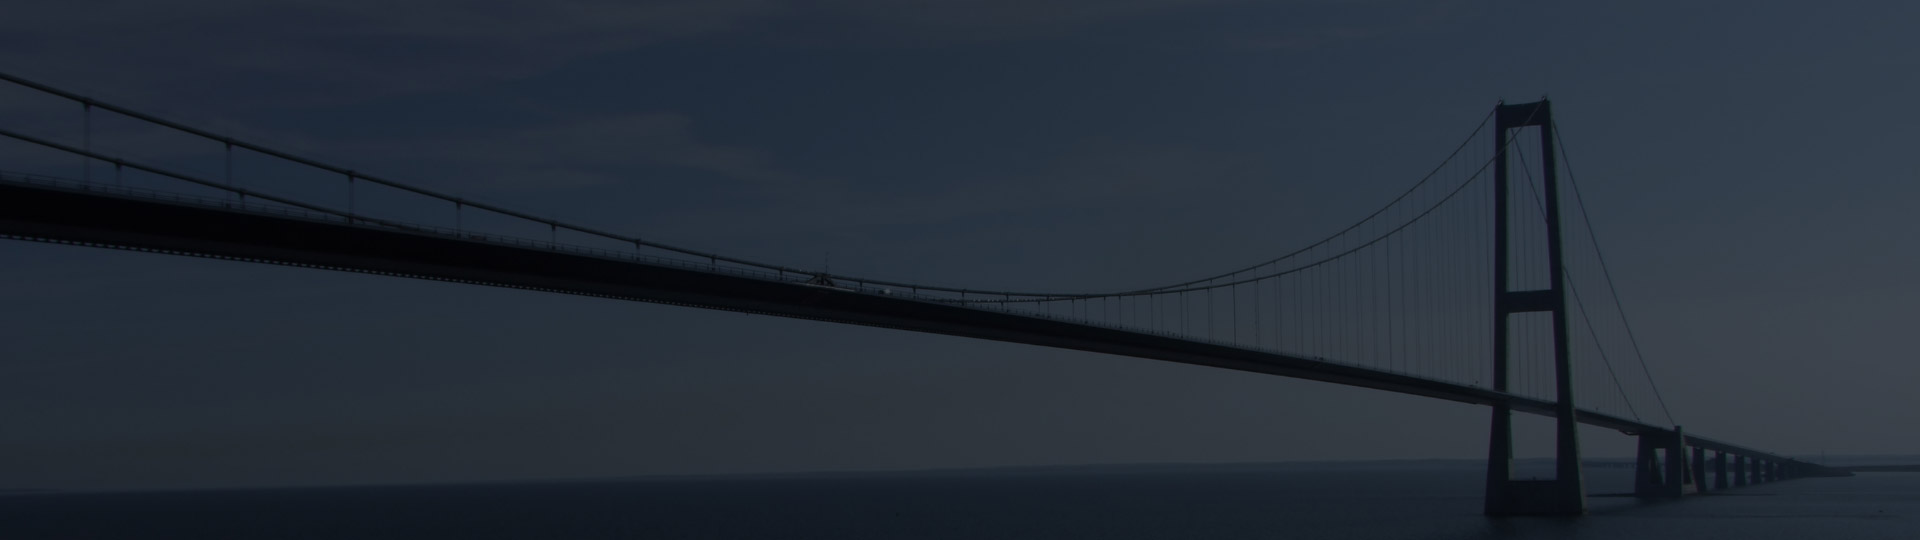 bridge background